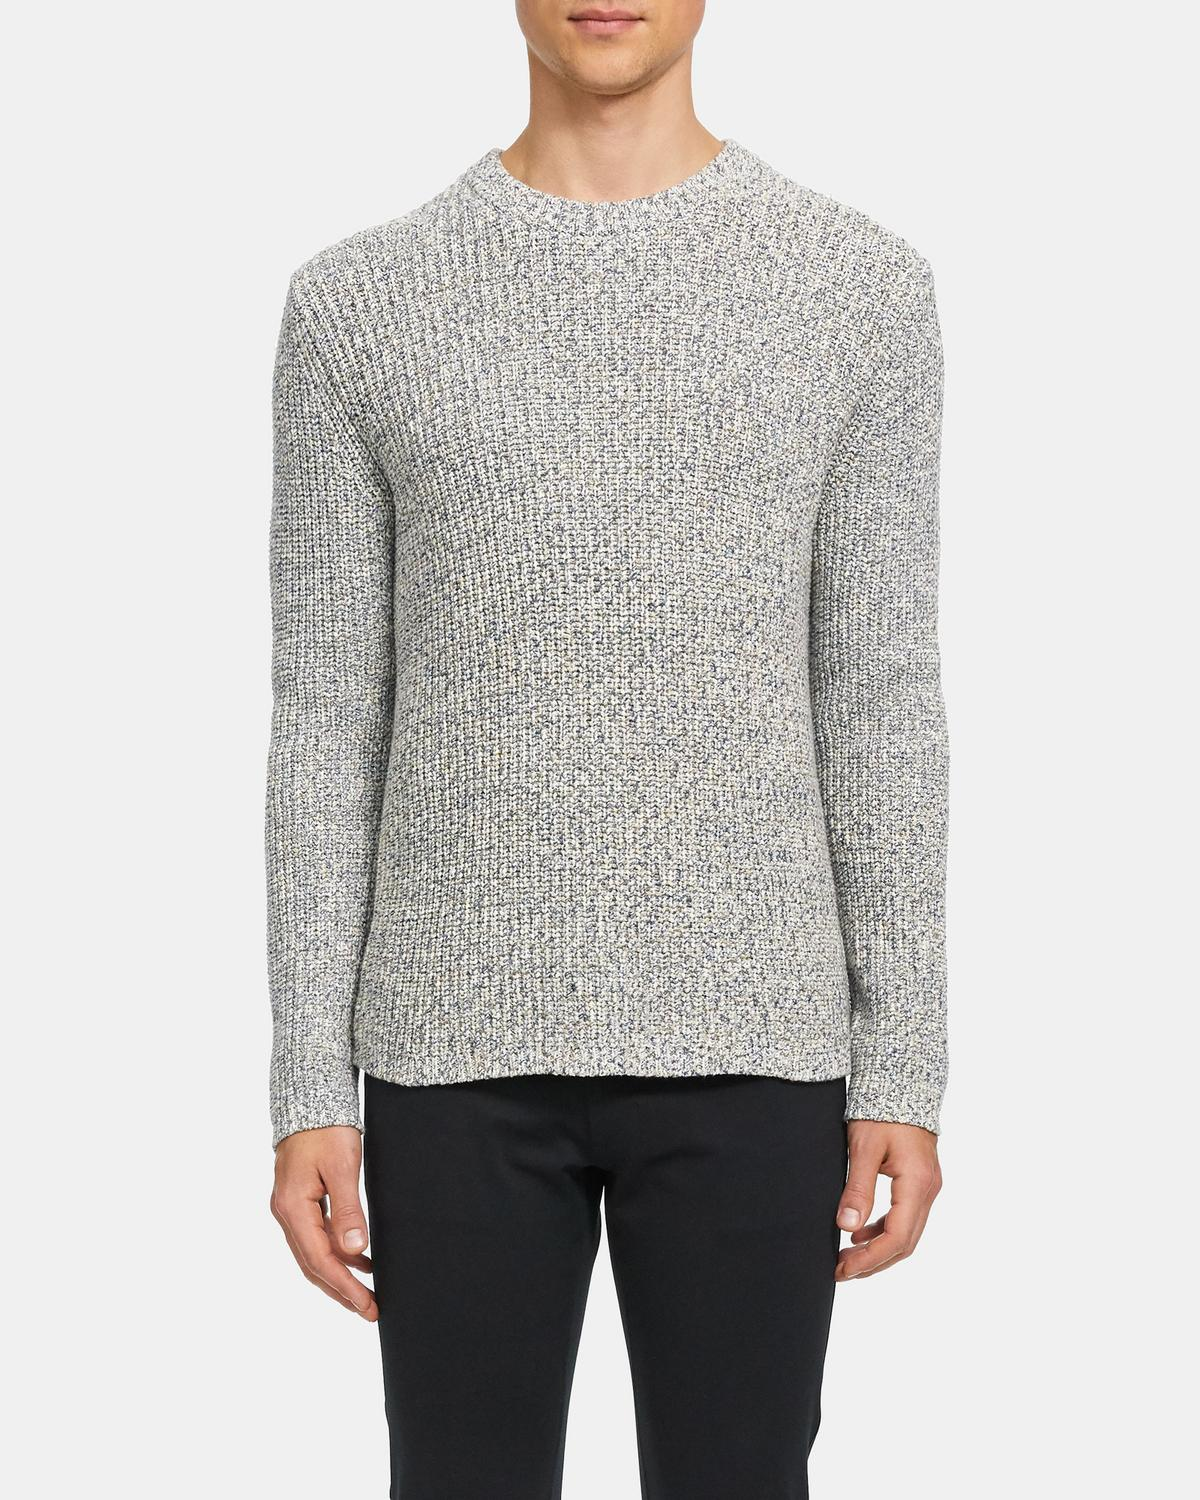 Crewneck Sweater in Speckled Cotton